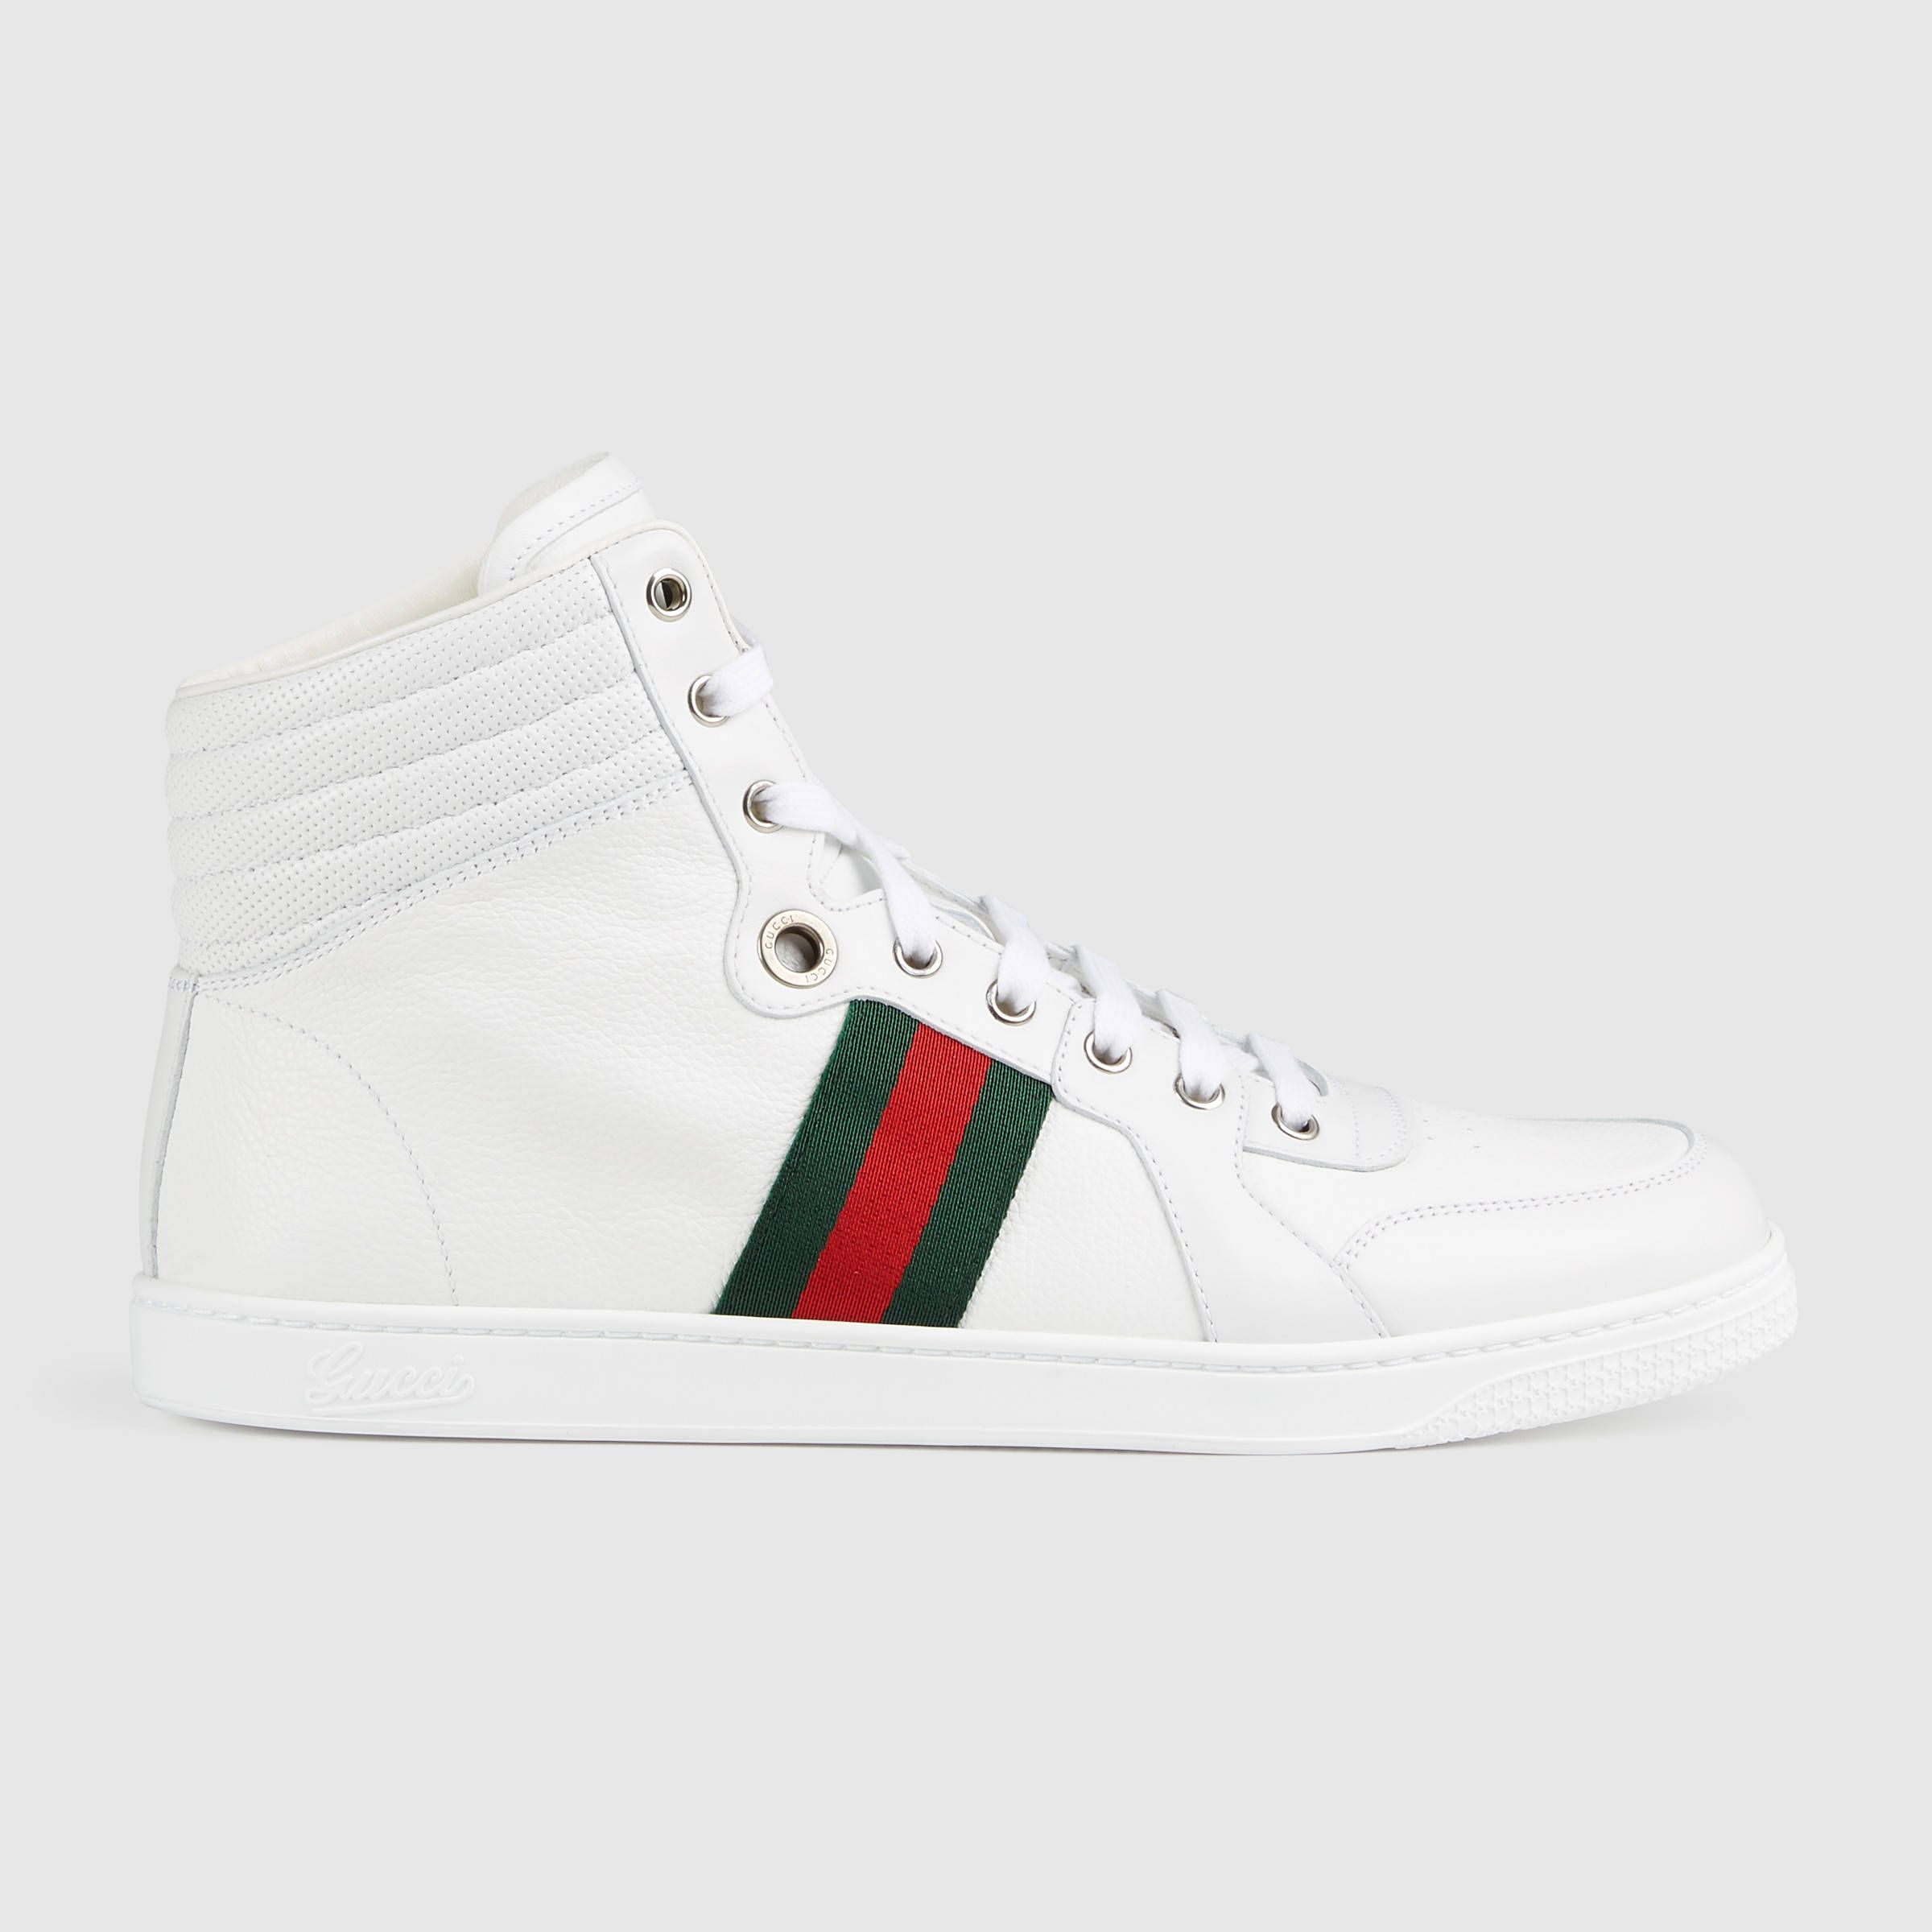 27255b943 Leather high-top sneaker | zapatos | Leather high tops, Sneakers ...